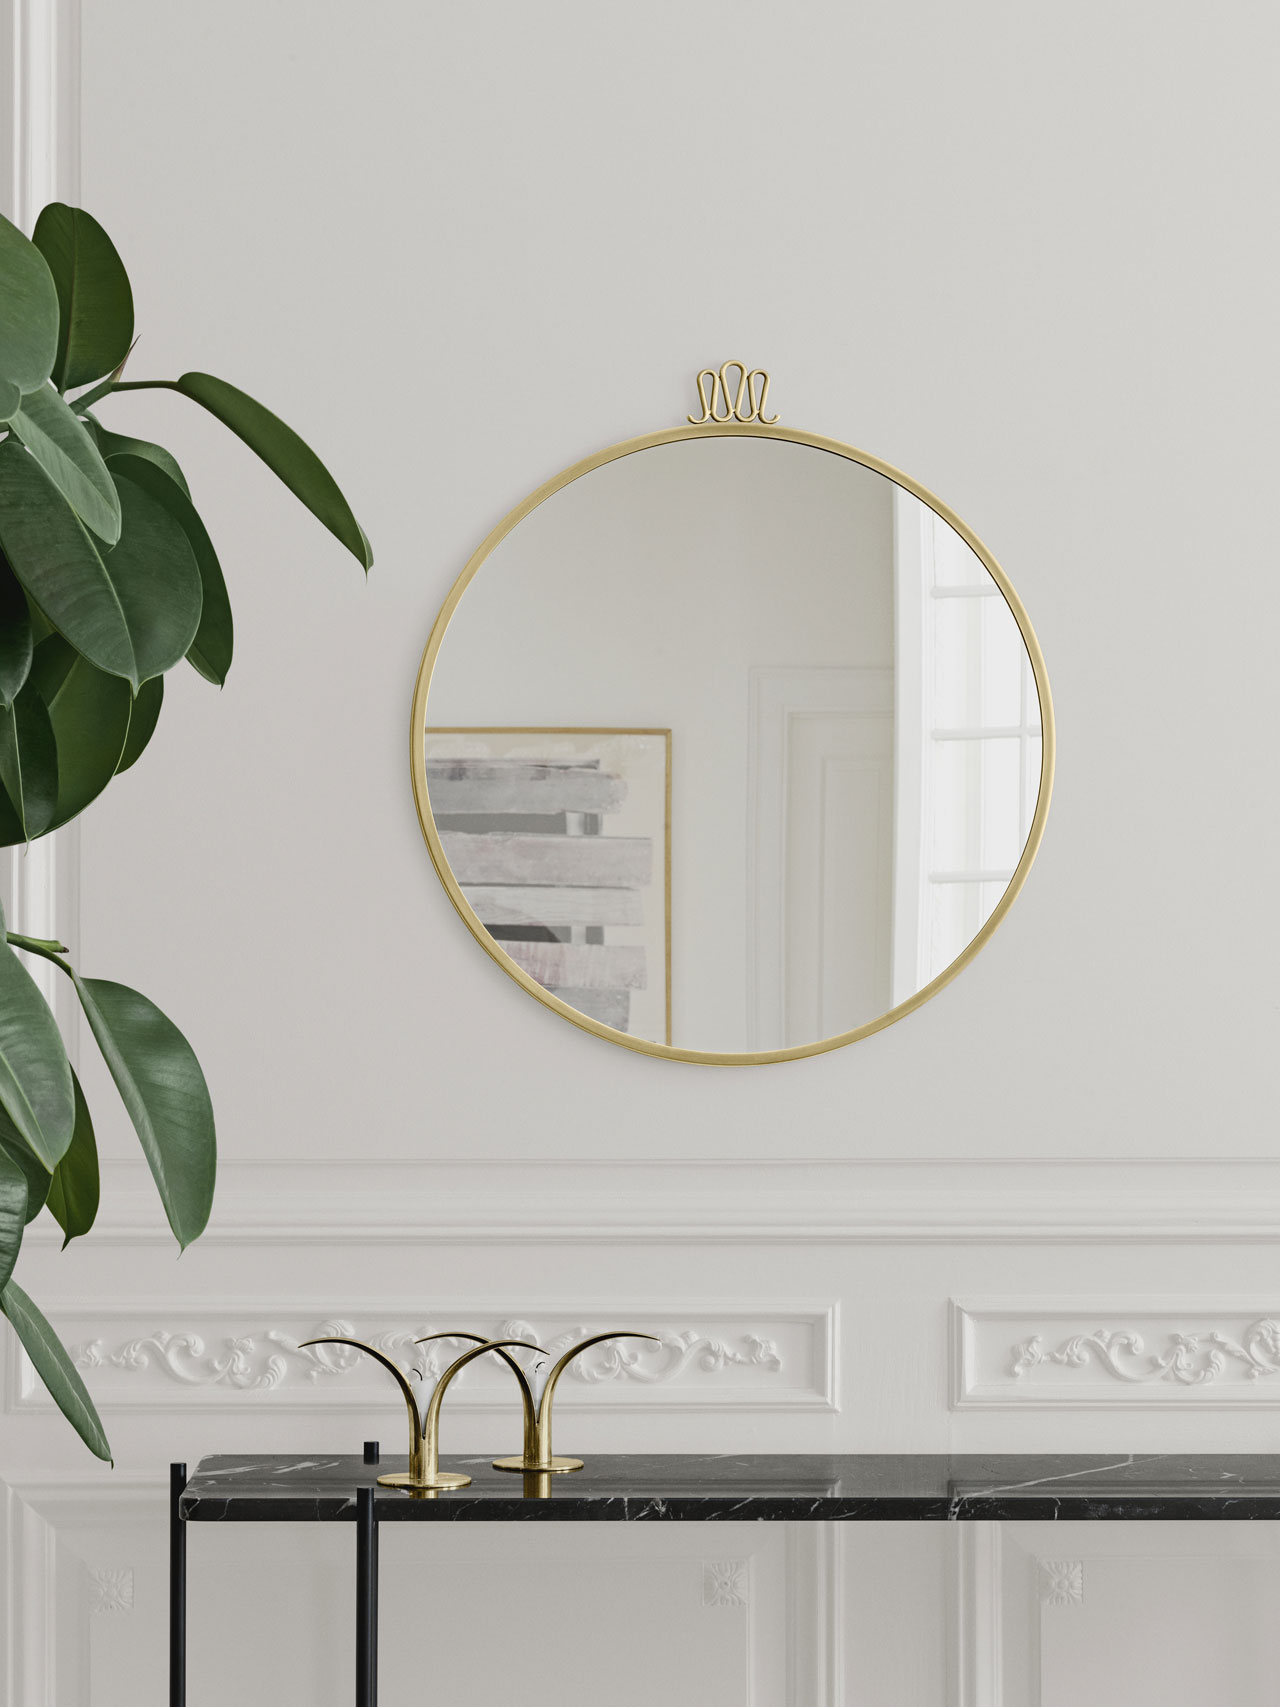 One of Gio Ponti's signature designs is the Randaccio mirror from 1925. ''Designed for his own home on Via Randaccio in Milano, his very first architectural project, the Randaccio mirror decorated the walls in his bedroom on the 3rd floor together with other furniture designed especially for the apartment.'' Since 2015 the mirror is reproduced by Gubi.